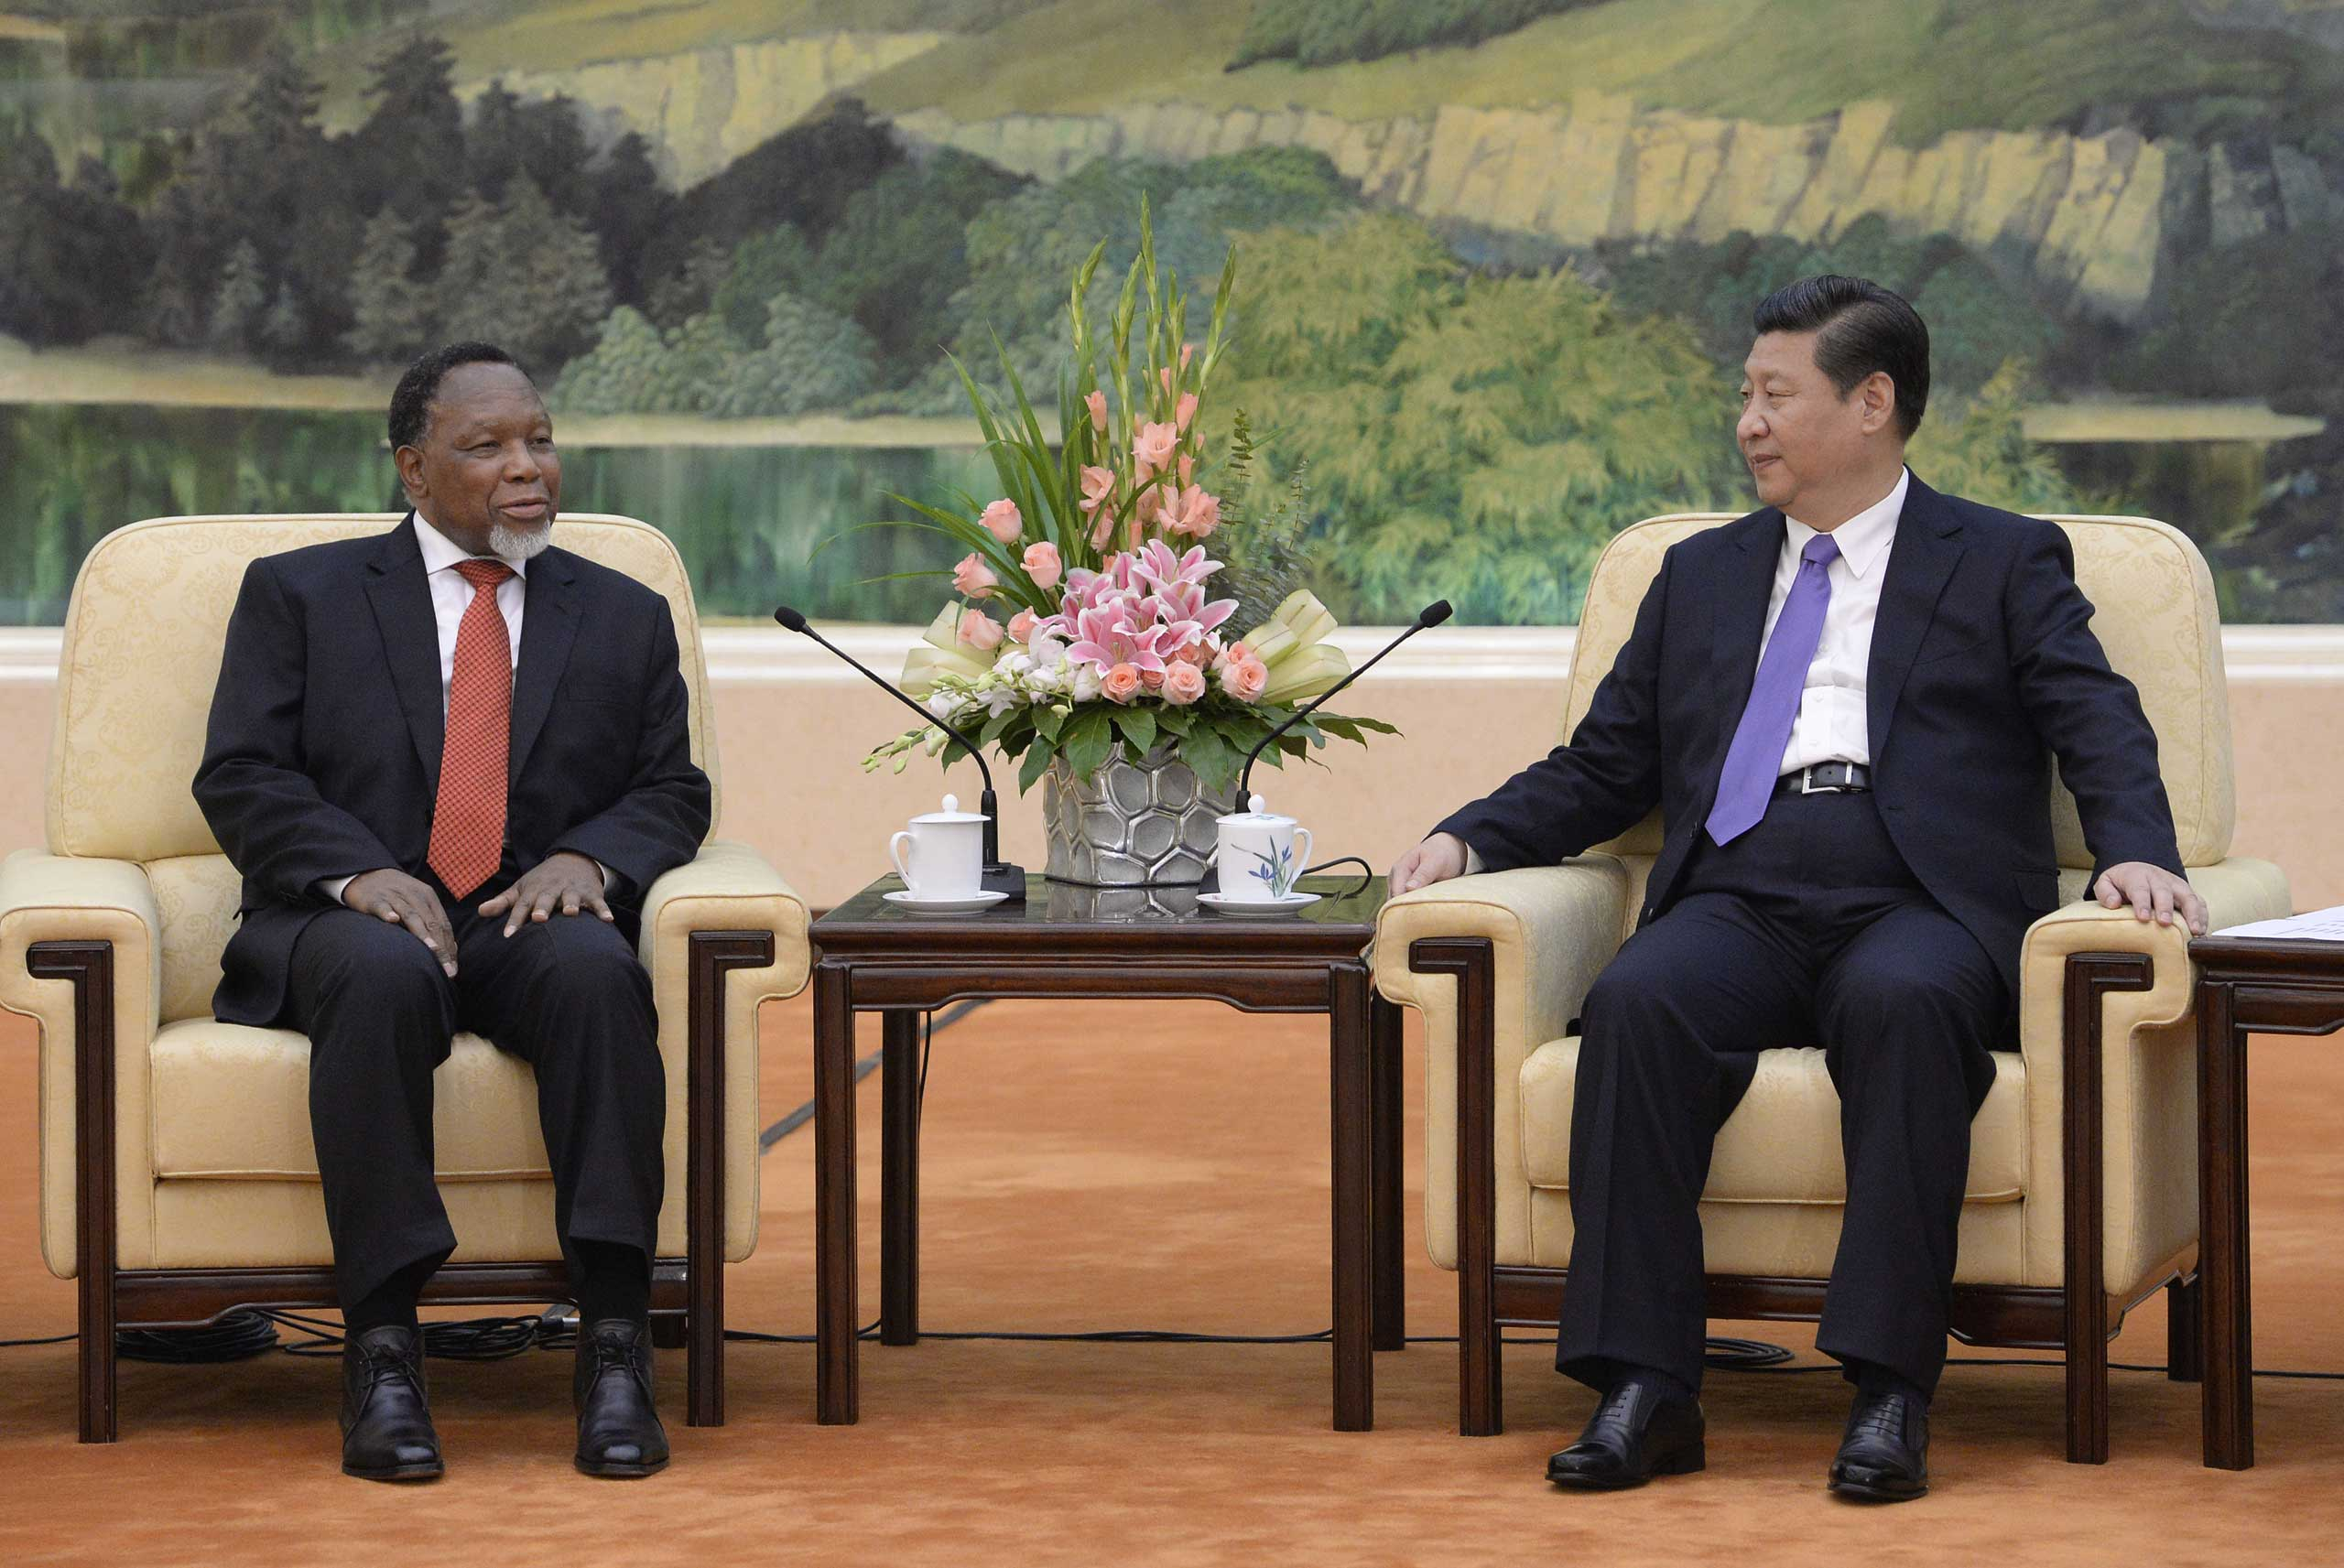 Then-South African Deputy President Kgalema Motlanthe meeting with Chinese President Xi Jinping in Beijing last year.